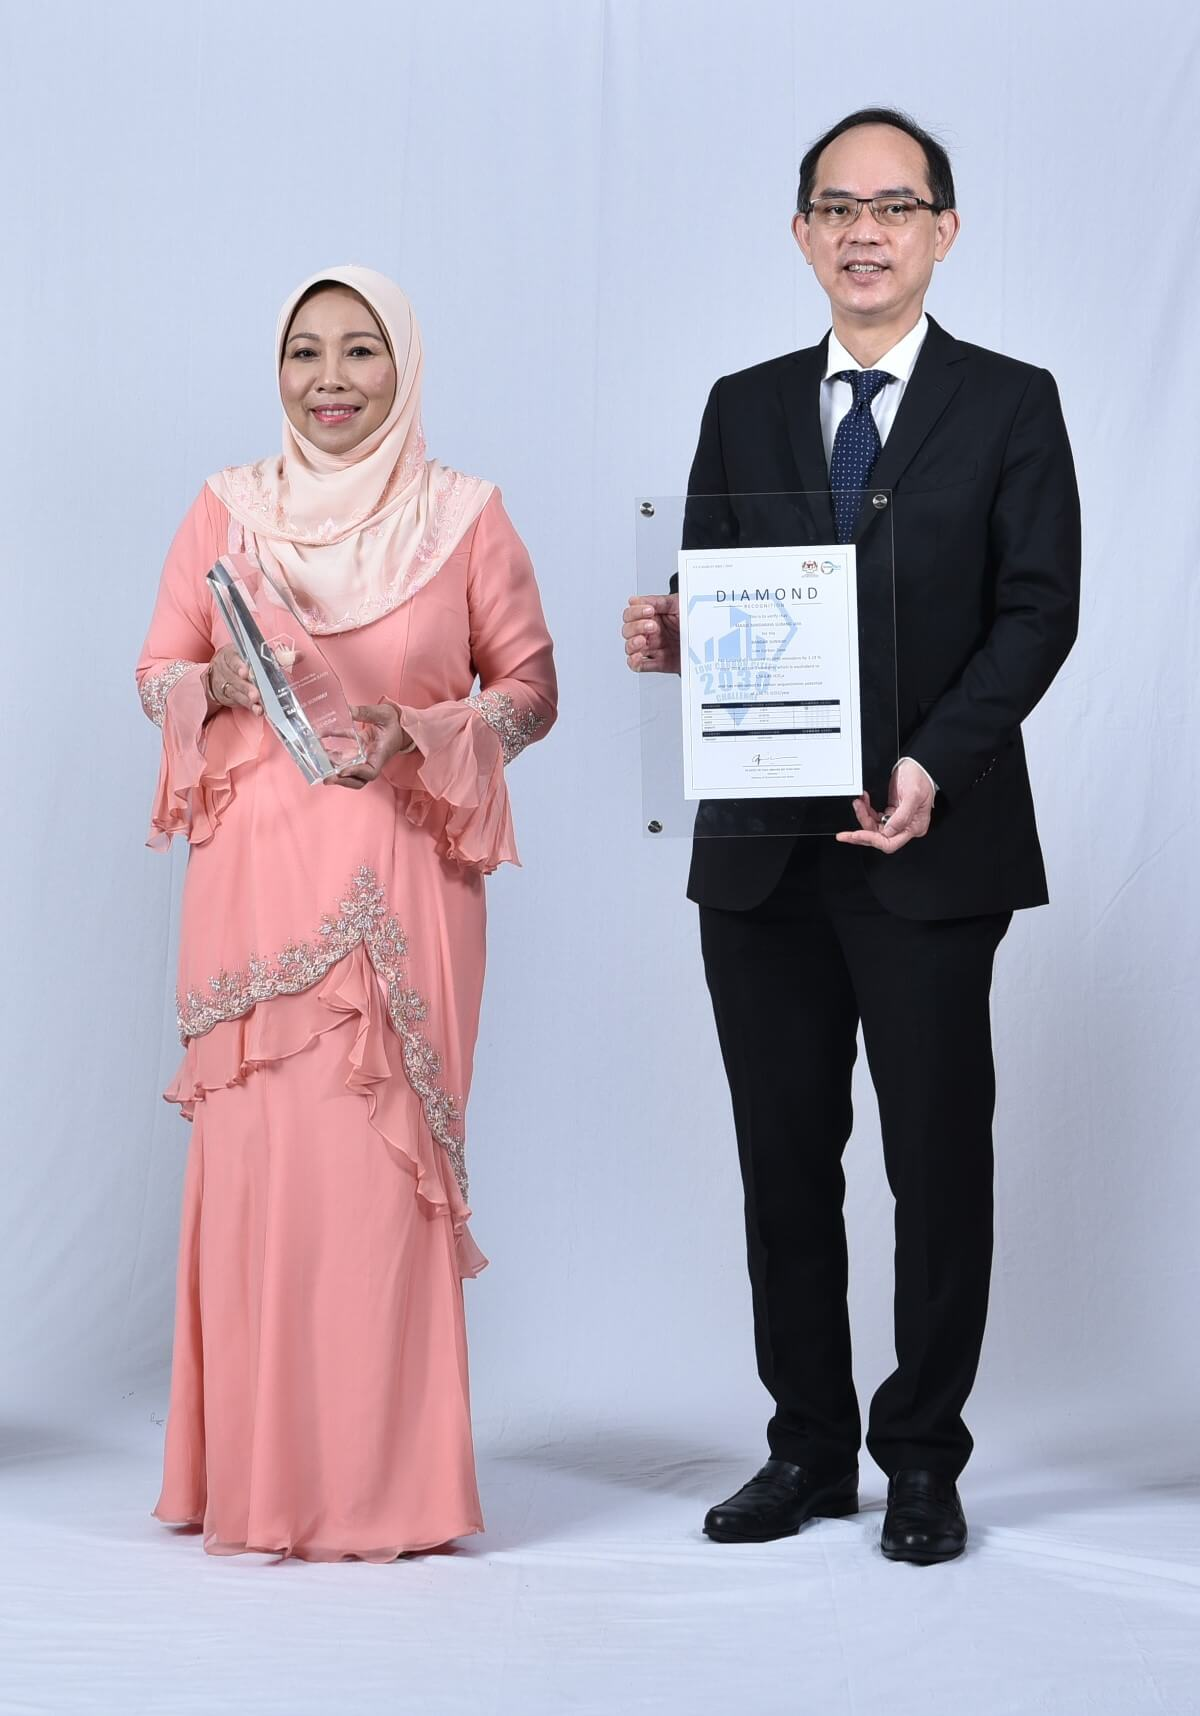 Mayor of Subang Jaya Noraini Binti Roslan and Sunway Property Management Division Senior General Manager holding the Low Carbon City Diamond Recognition trophy and certificate respectively